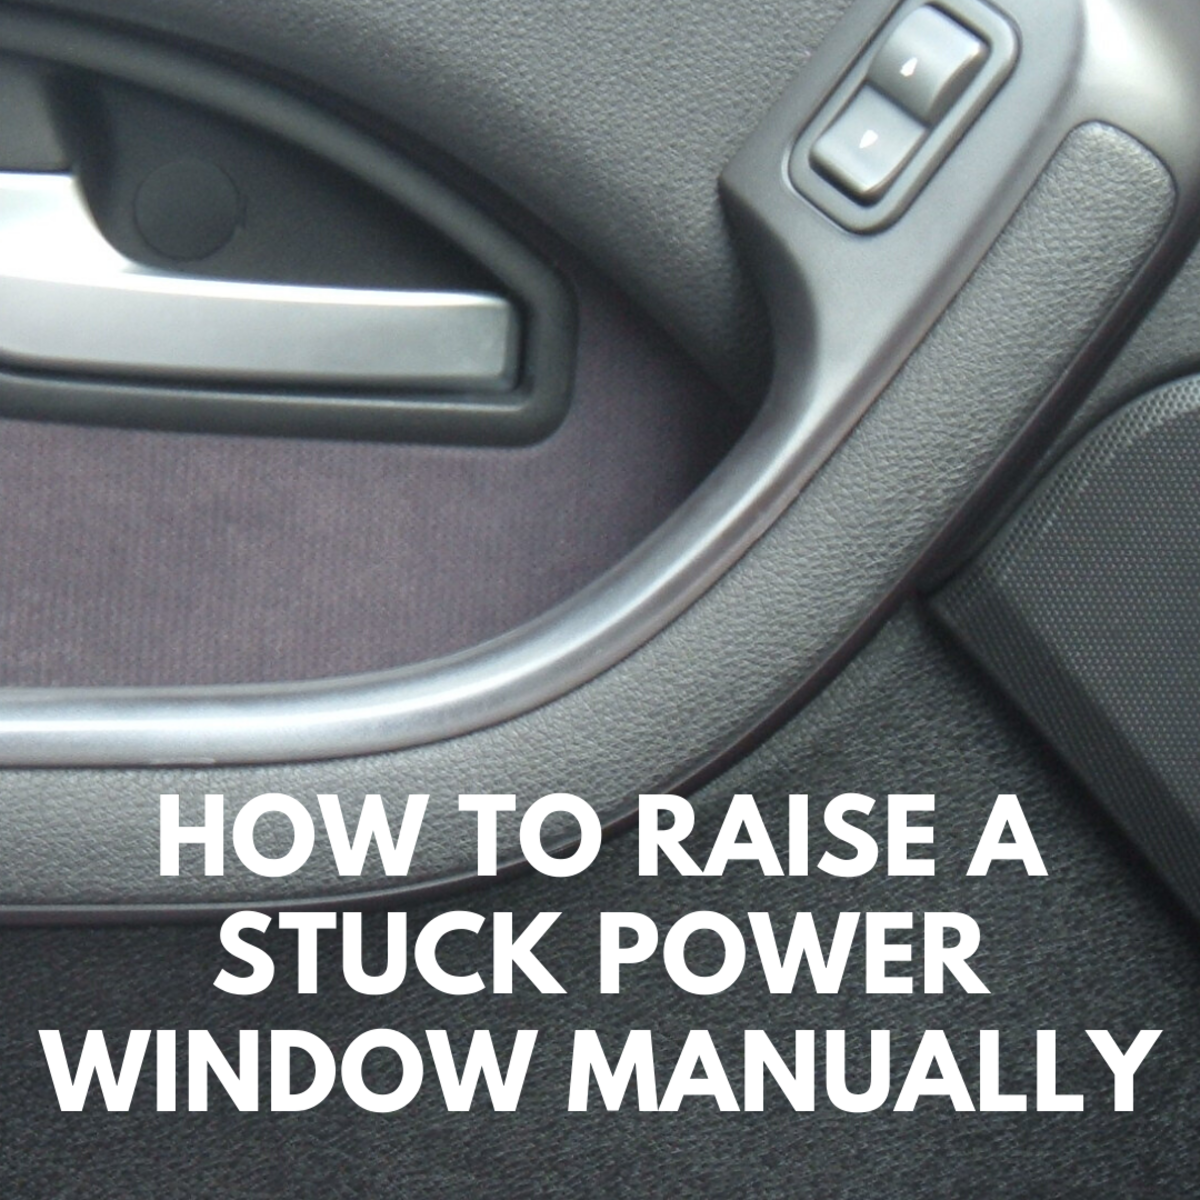 How to Raise a Stuck Power Window Manually in a Car